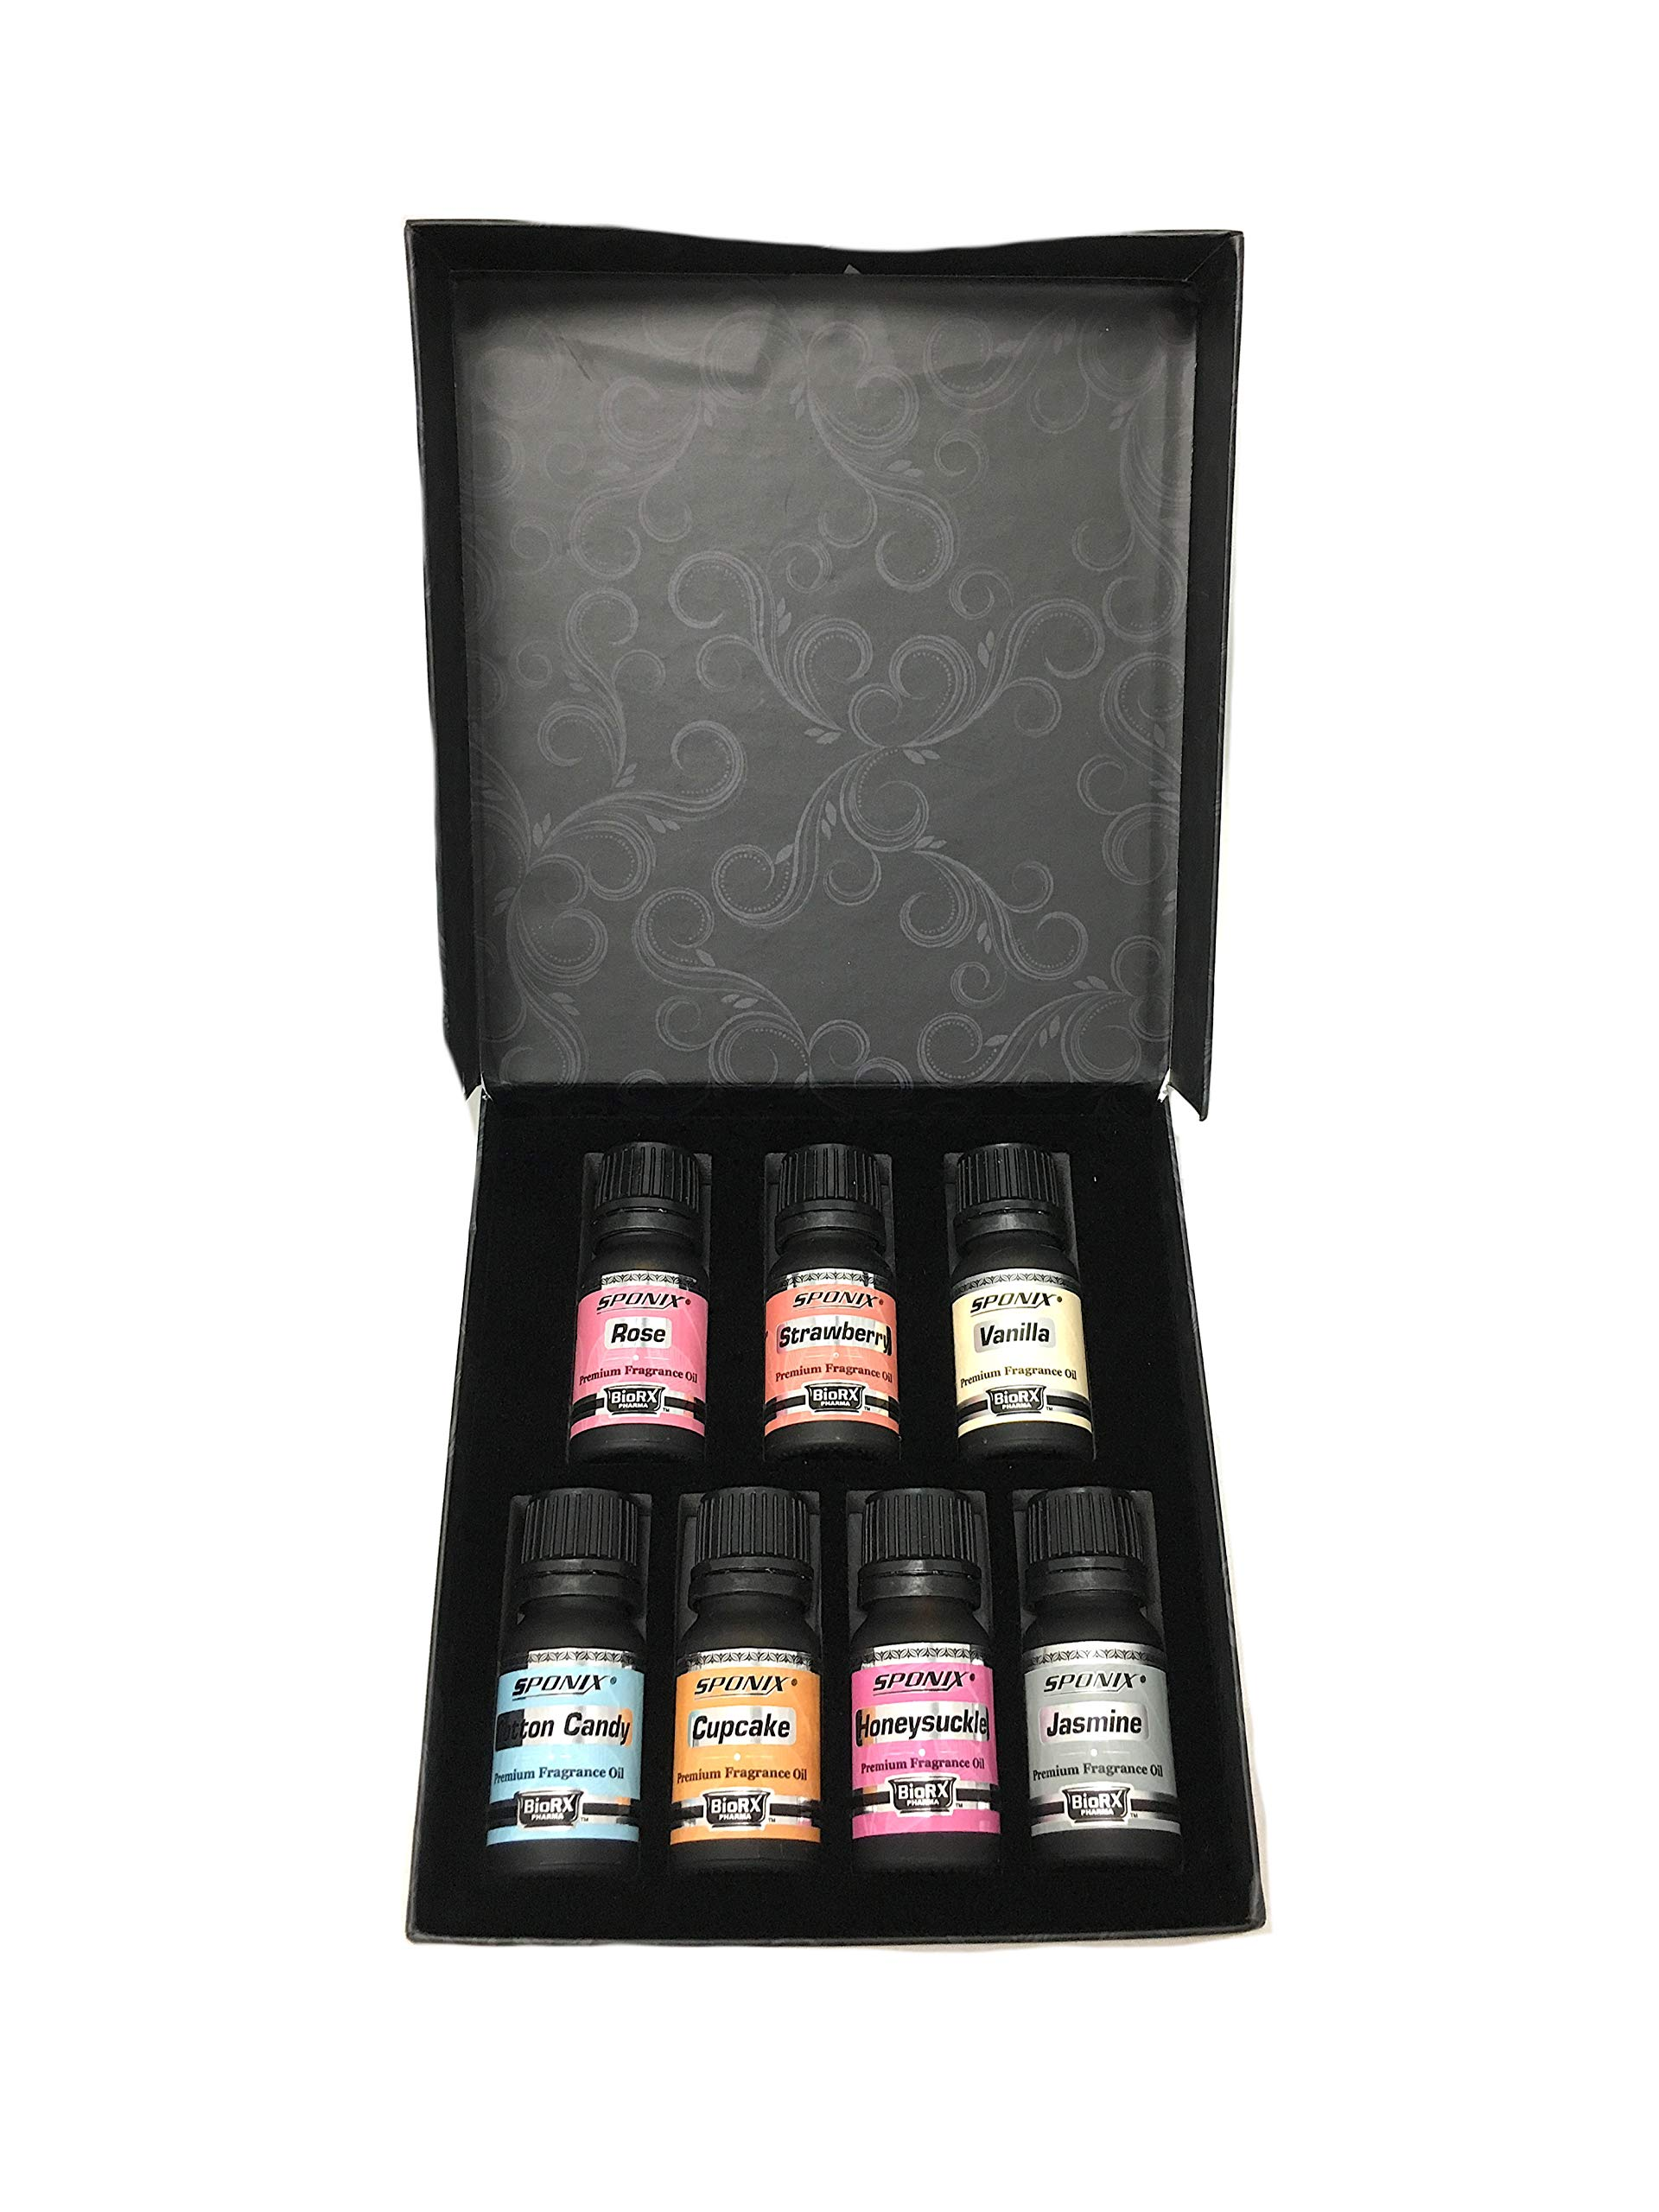 Top Fragrance Oil Gift Set - Best 7 Scented Perfume Oil -Cotton Candy, Frosted Cupcake, Honeysuckle, Jasmine, Rose Strawberry & Vanilla - Premium Grade - 10 mL by Sponix by Sponix